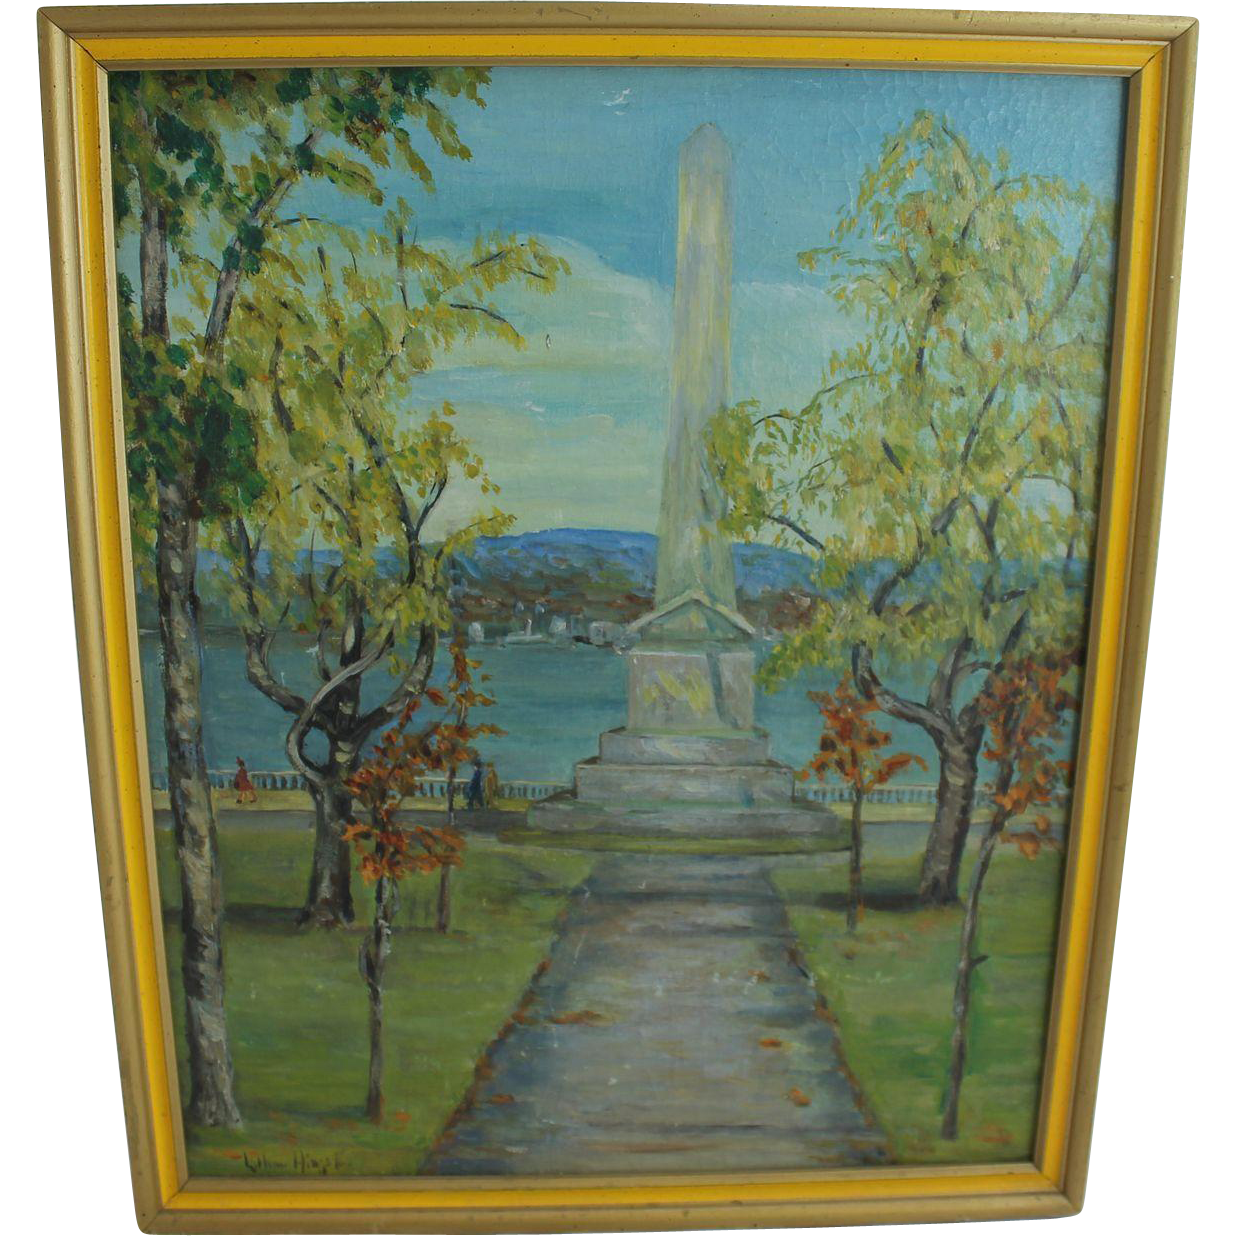 Oil painting frames canada best painting 2018 for Best mural paint